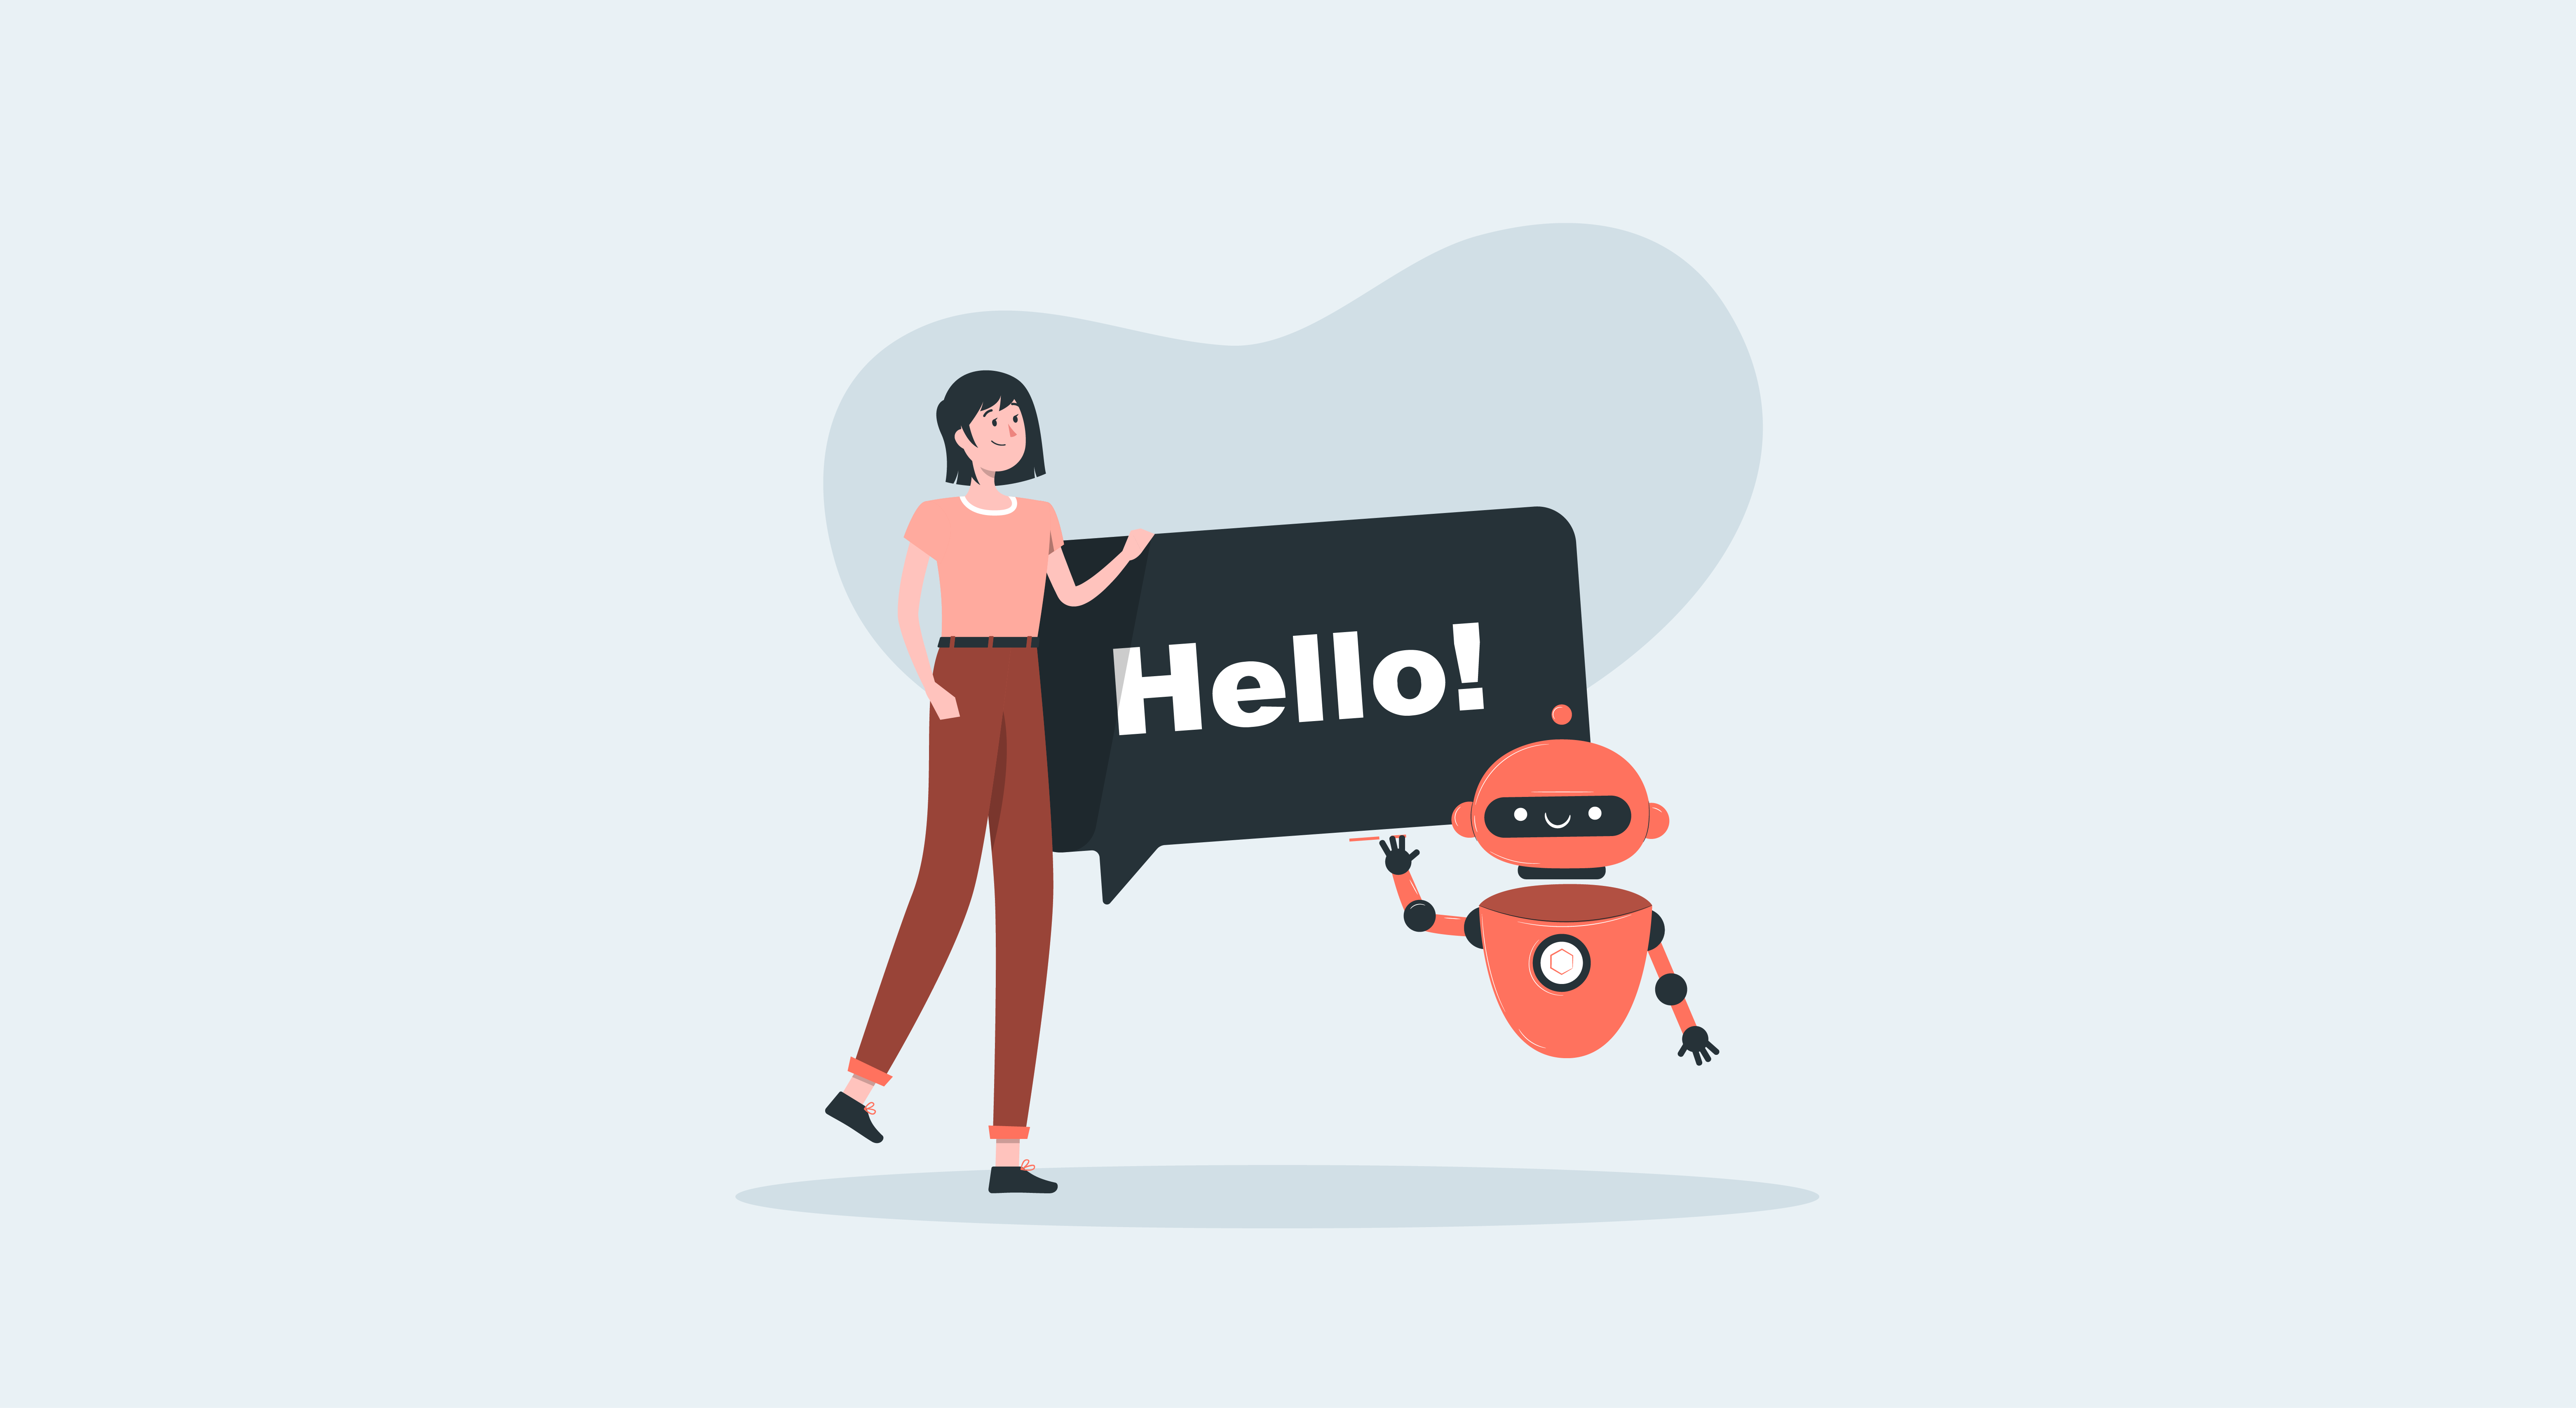 How To Craft A Great Chatbot Welcome Message